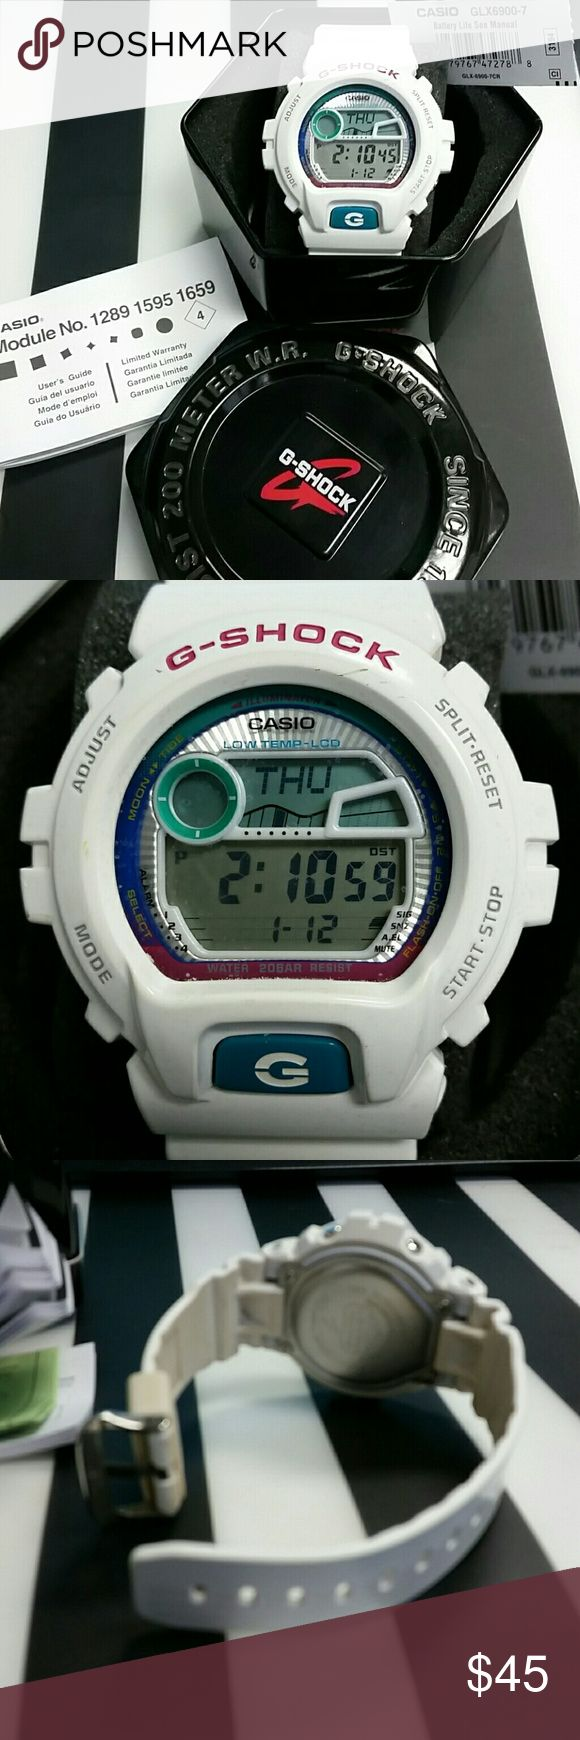 G-Shock by Casio Multi-Function White Watch White G-Shock Watch by Casio (GLX6900-7)  Used with normal signs of wear. Includes original box, manual and retail price tag. Working battery.   Shock Resistant & 200M Water Resistant Full Auto Backlight with Afterglow (Teal) 29 times zones (48 cities) 4 Multi-Function Alarms and 1 Snooze Alarm Size of case/total weight: 53.2 x 50.0 x 17.7mm / 65g  Full specs: http://www.gshock.com/watches/Others/GLX6900-7 G-Shock Accessories Watches